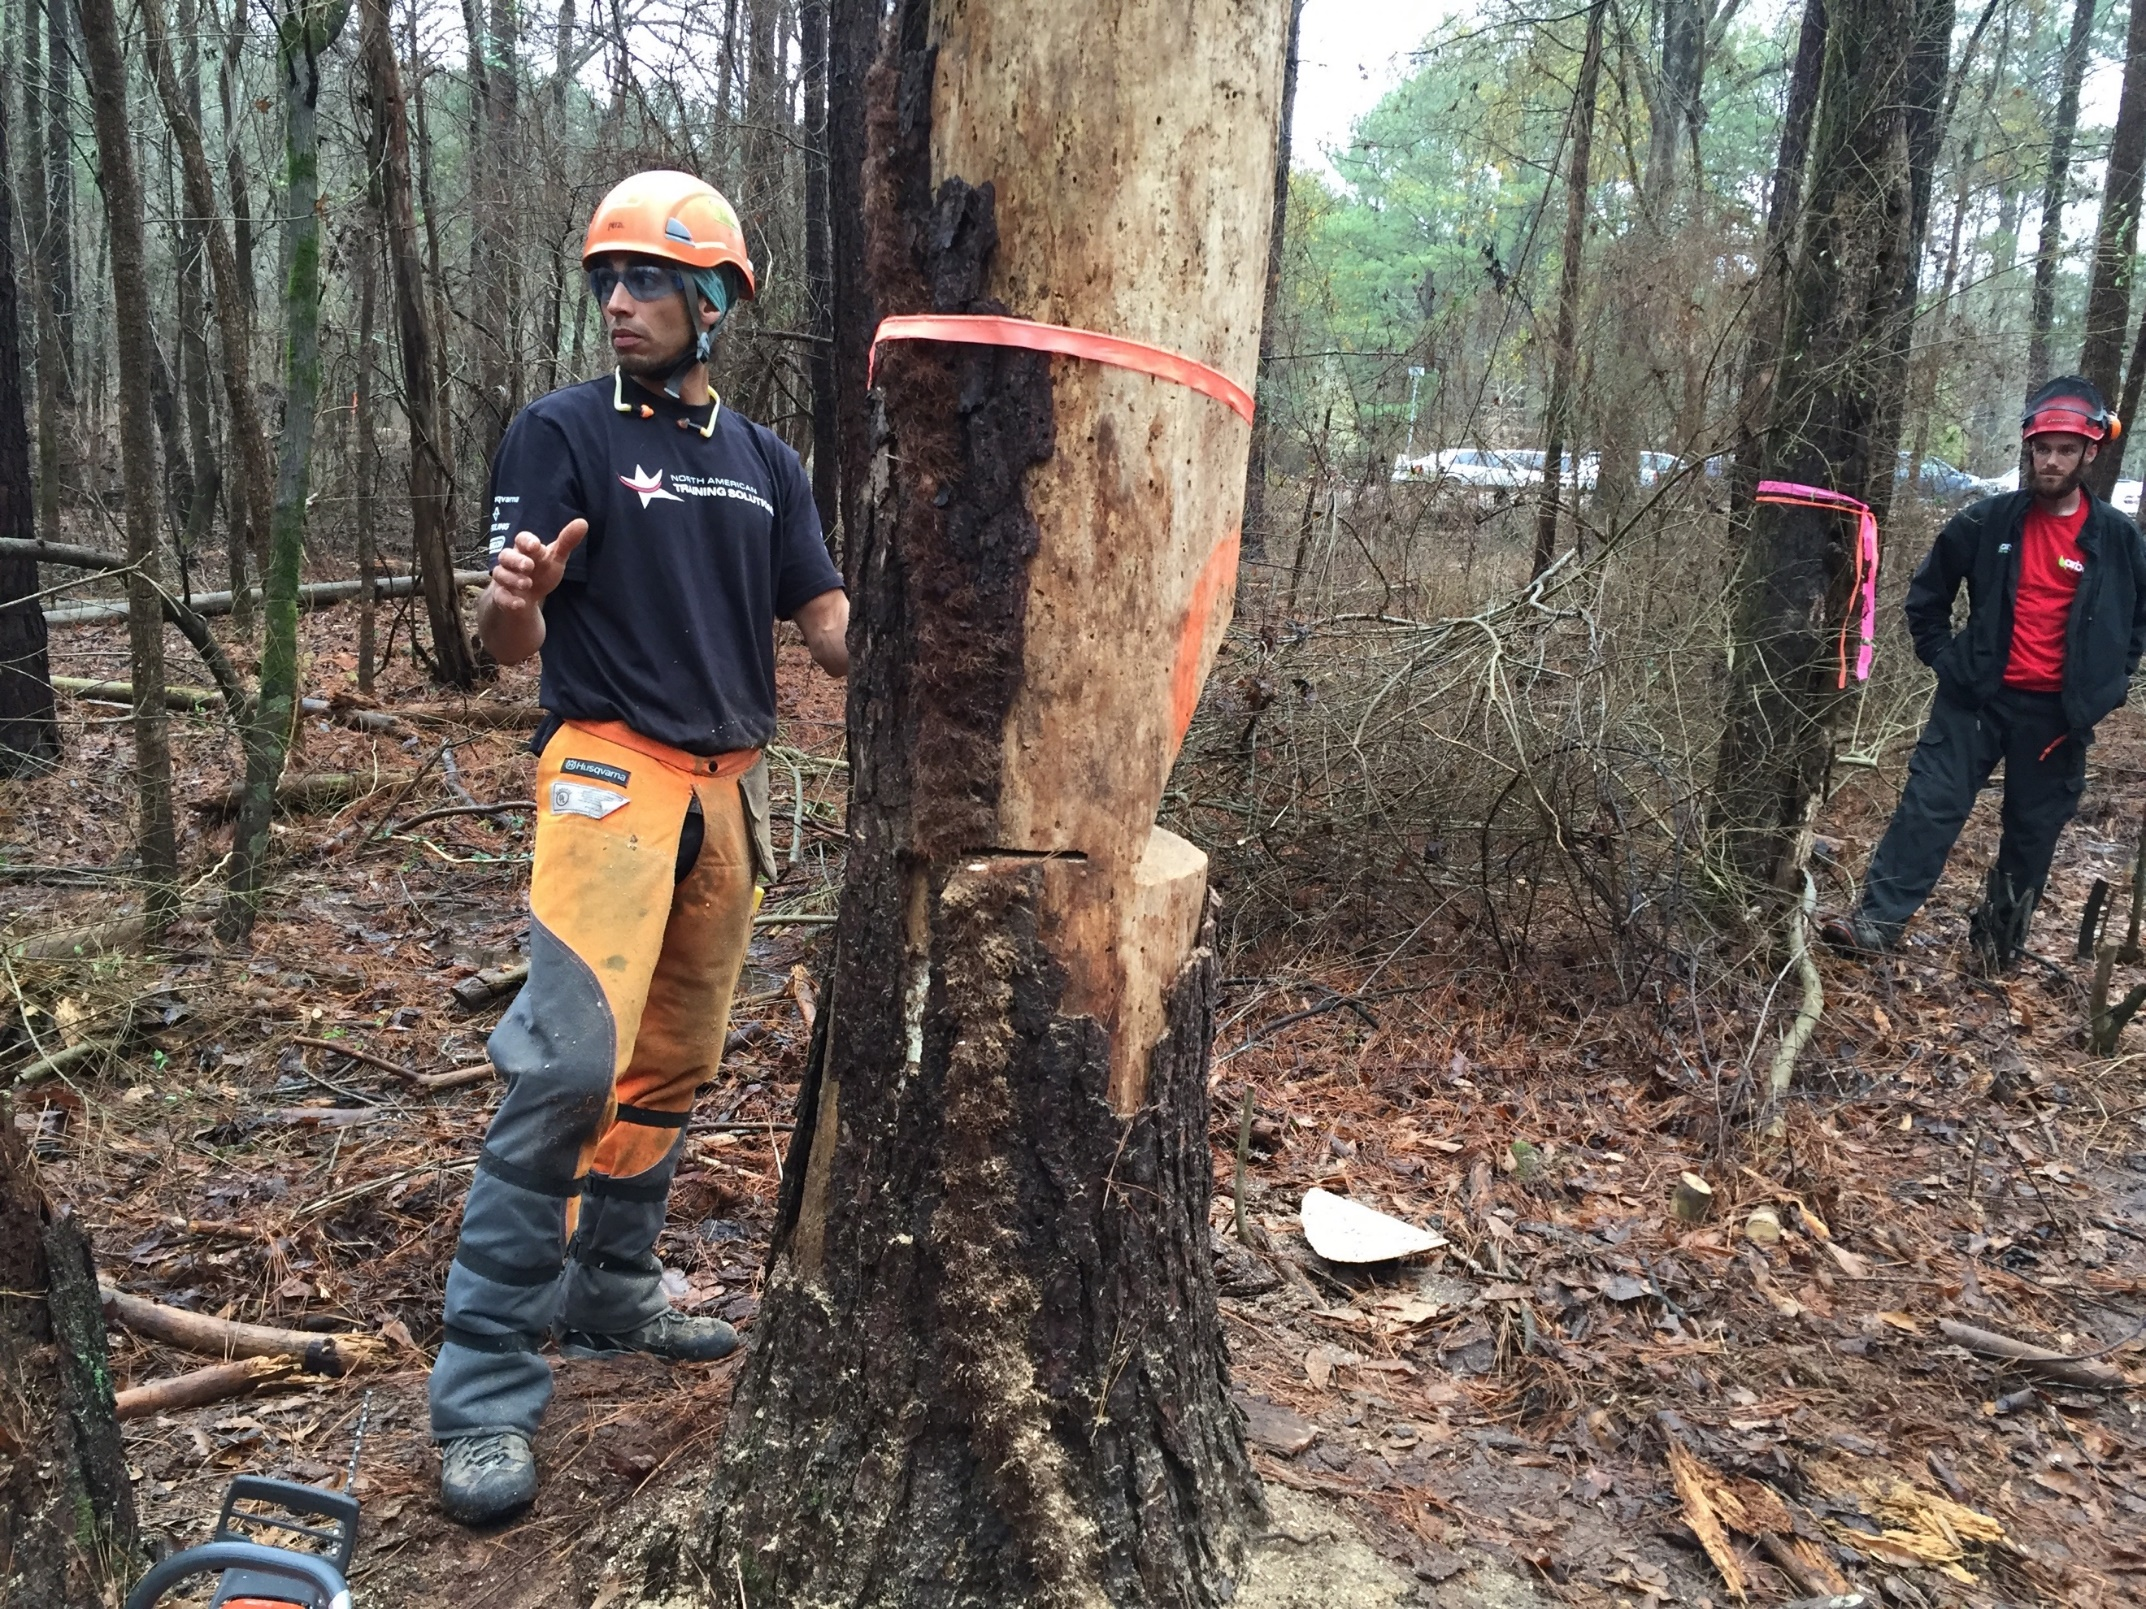 Man in protective gear for a chainsaw